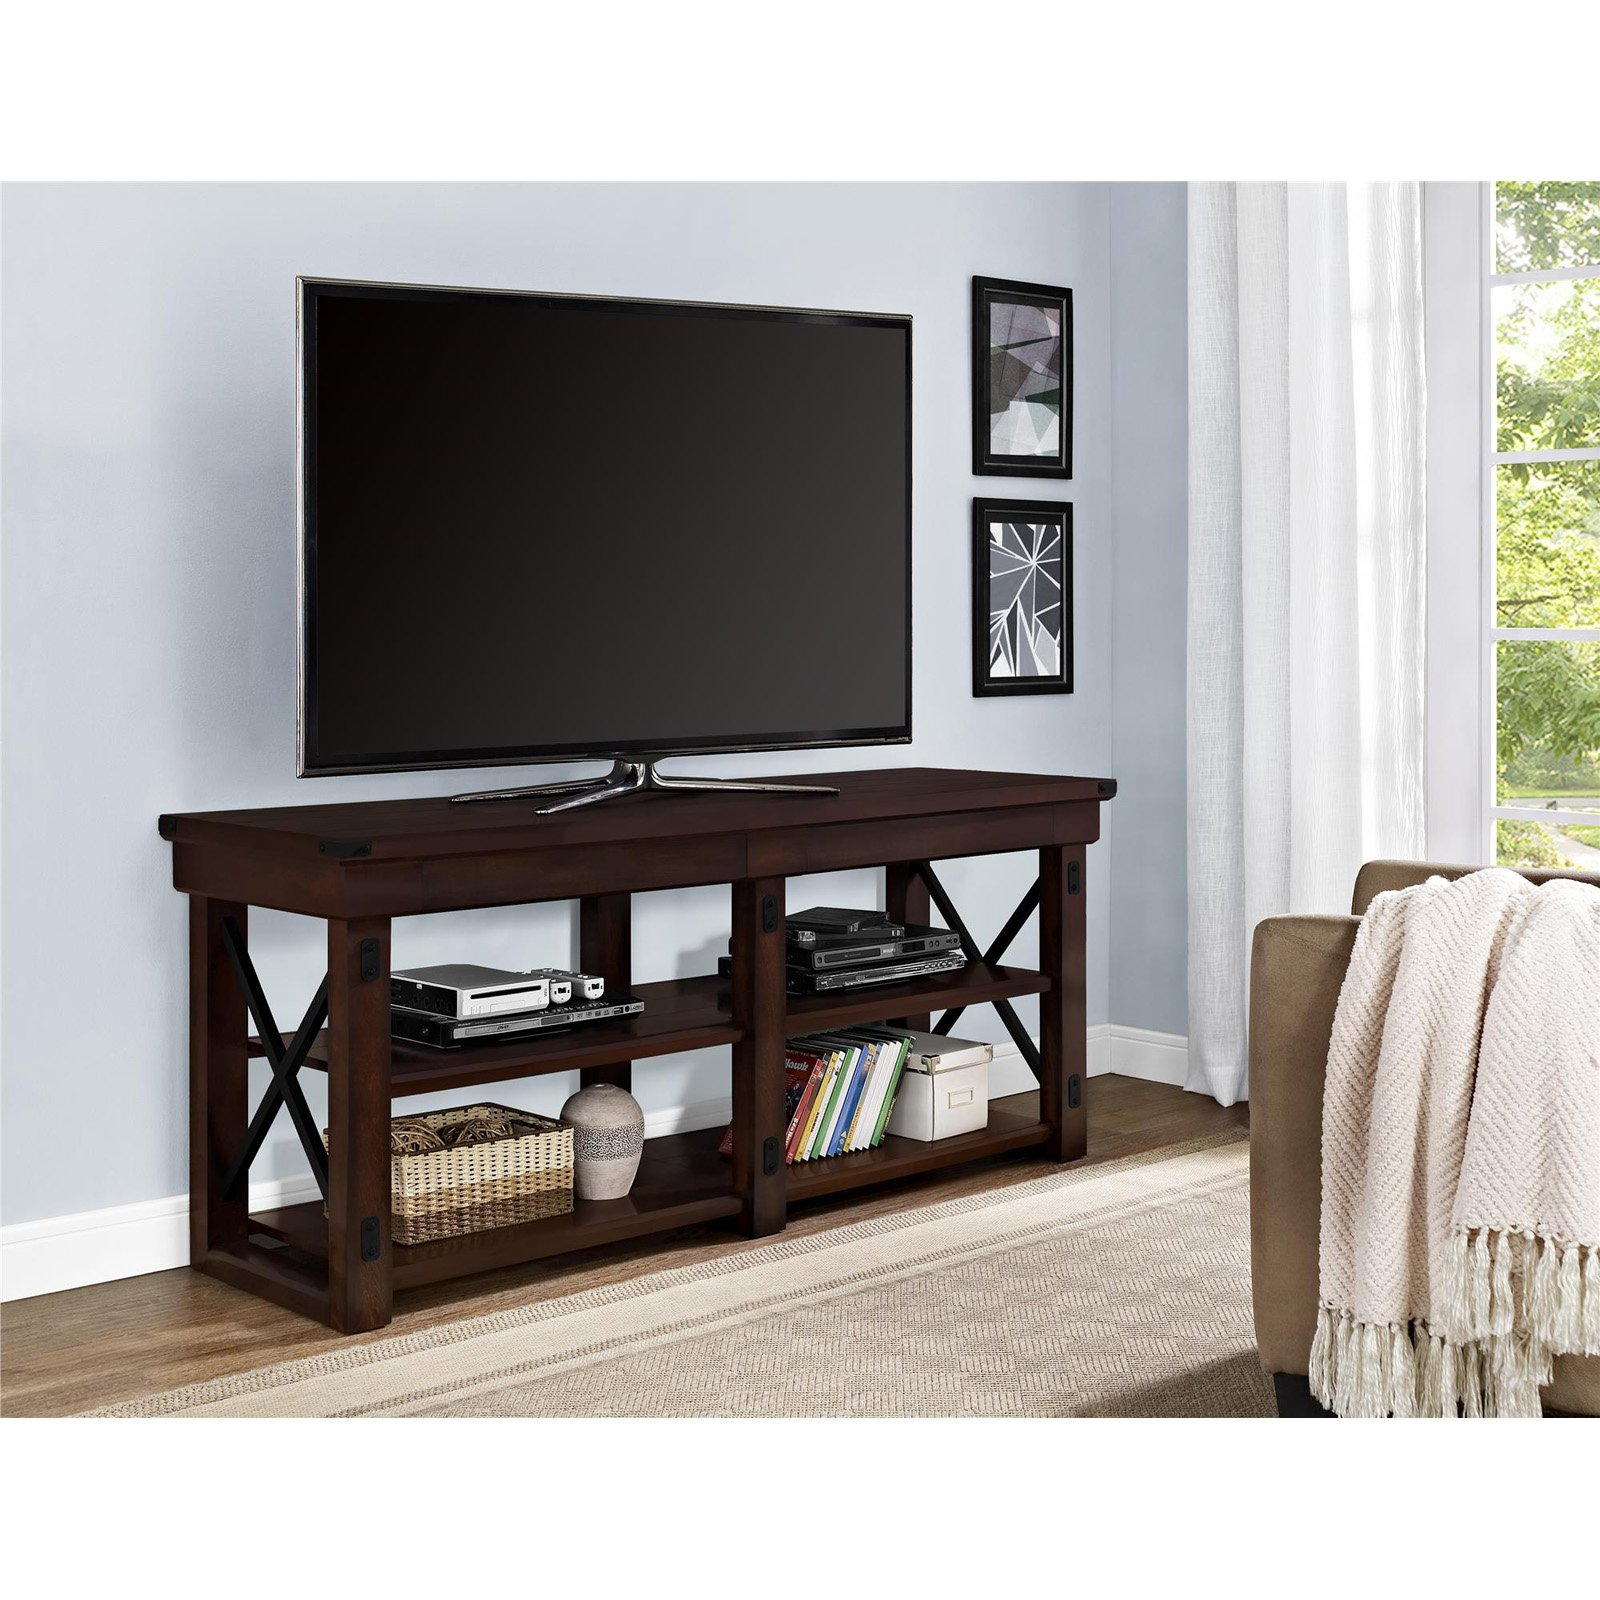 "Ameriwood Home Wildwood Wood Veneer TV Stand for TVs up to 50"" Wide, Espresso"